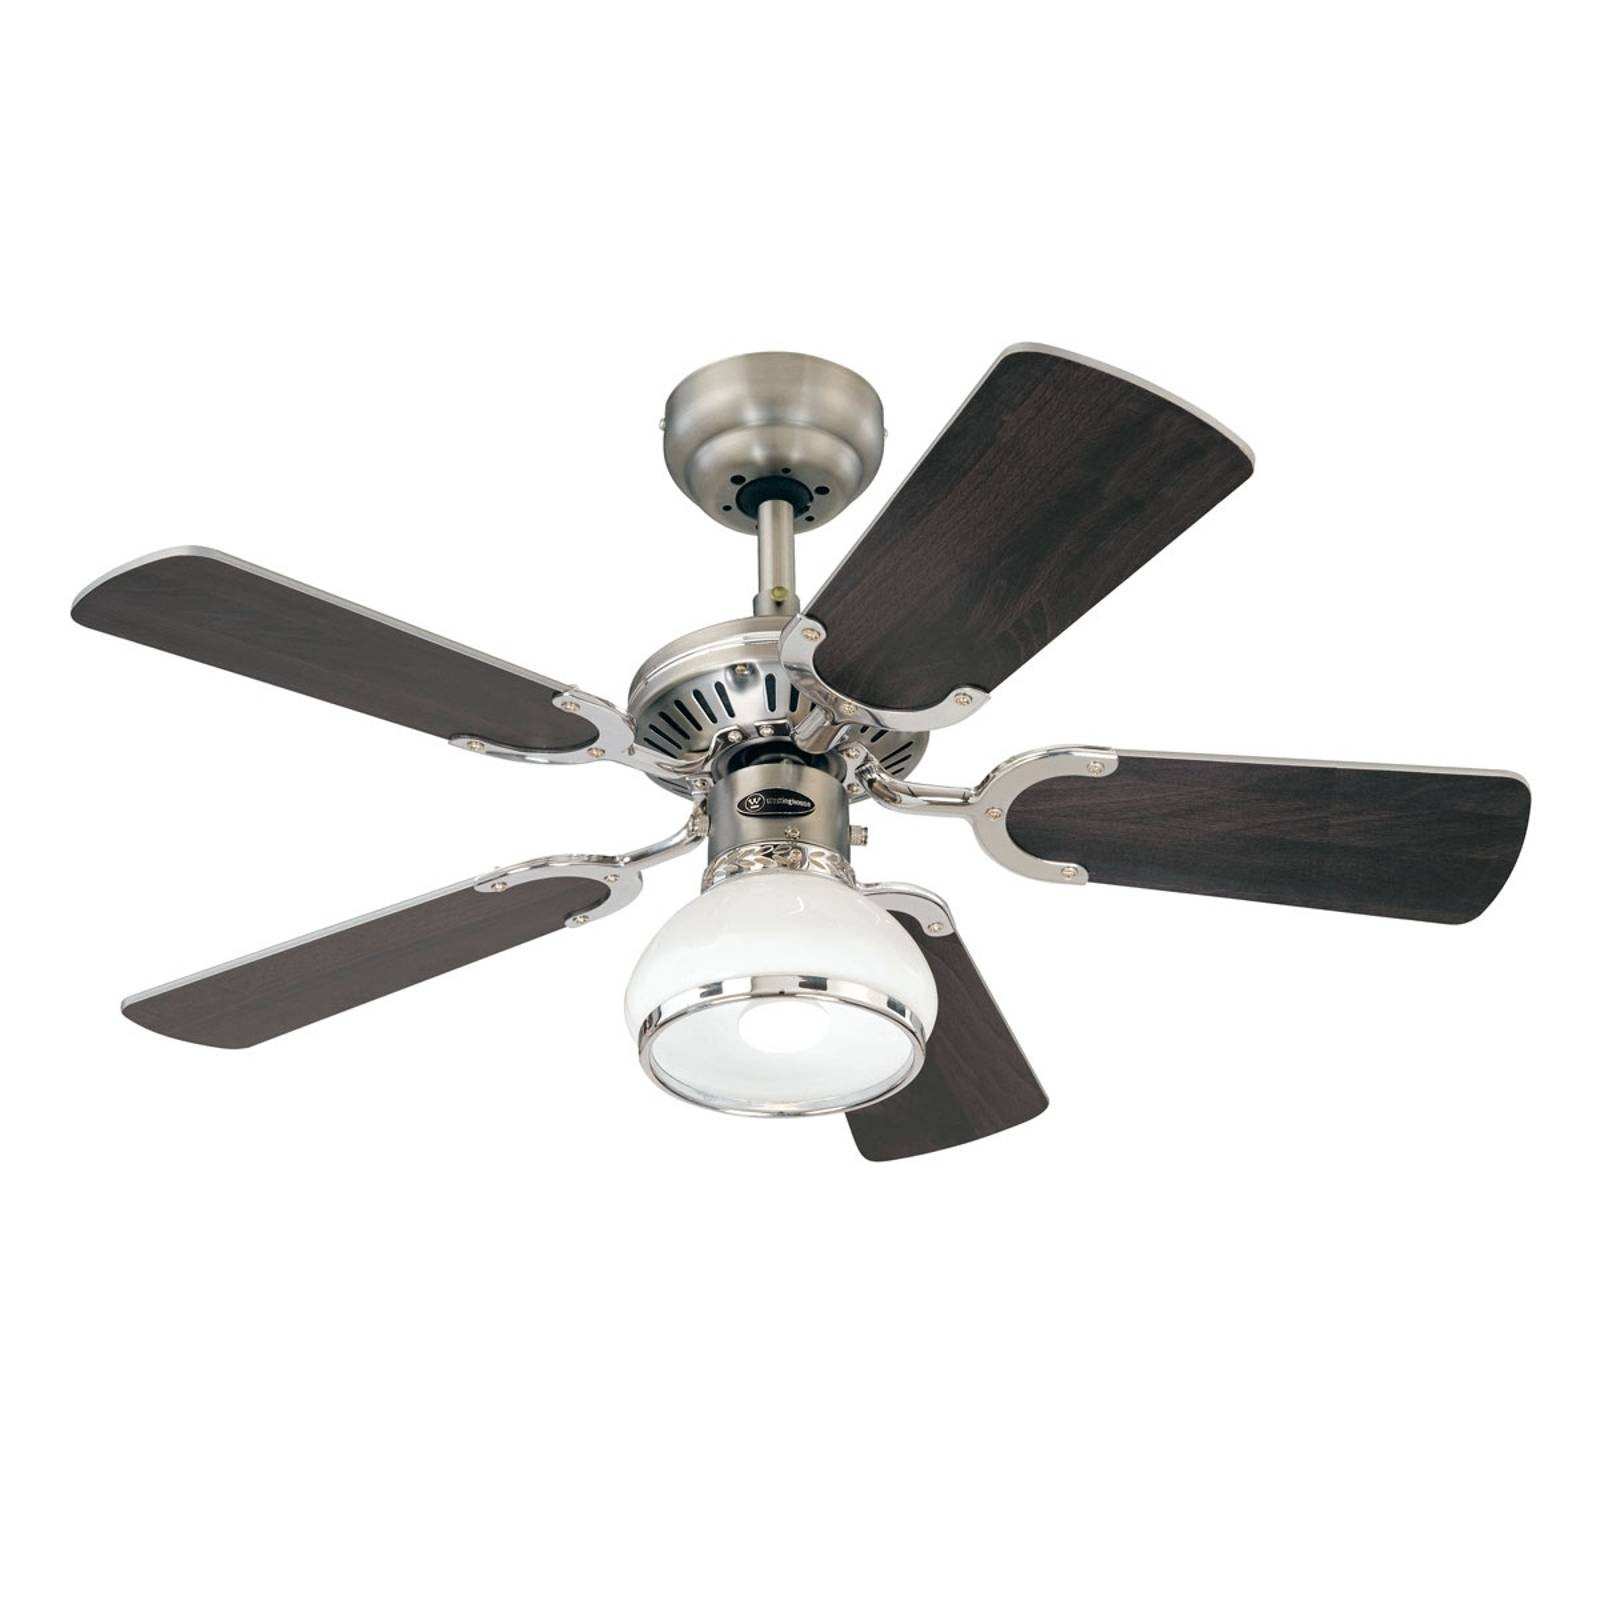 Princess Radiance ceiling fan with light from Westinghouse